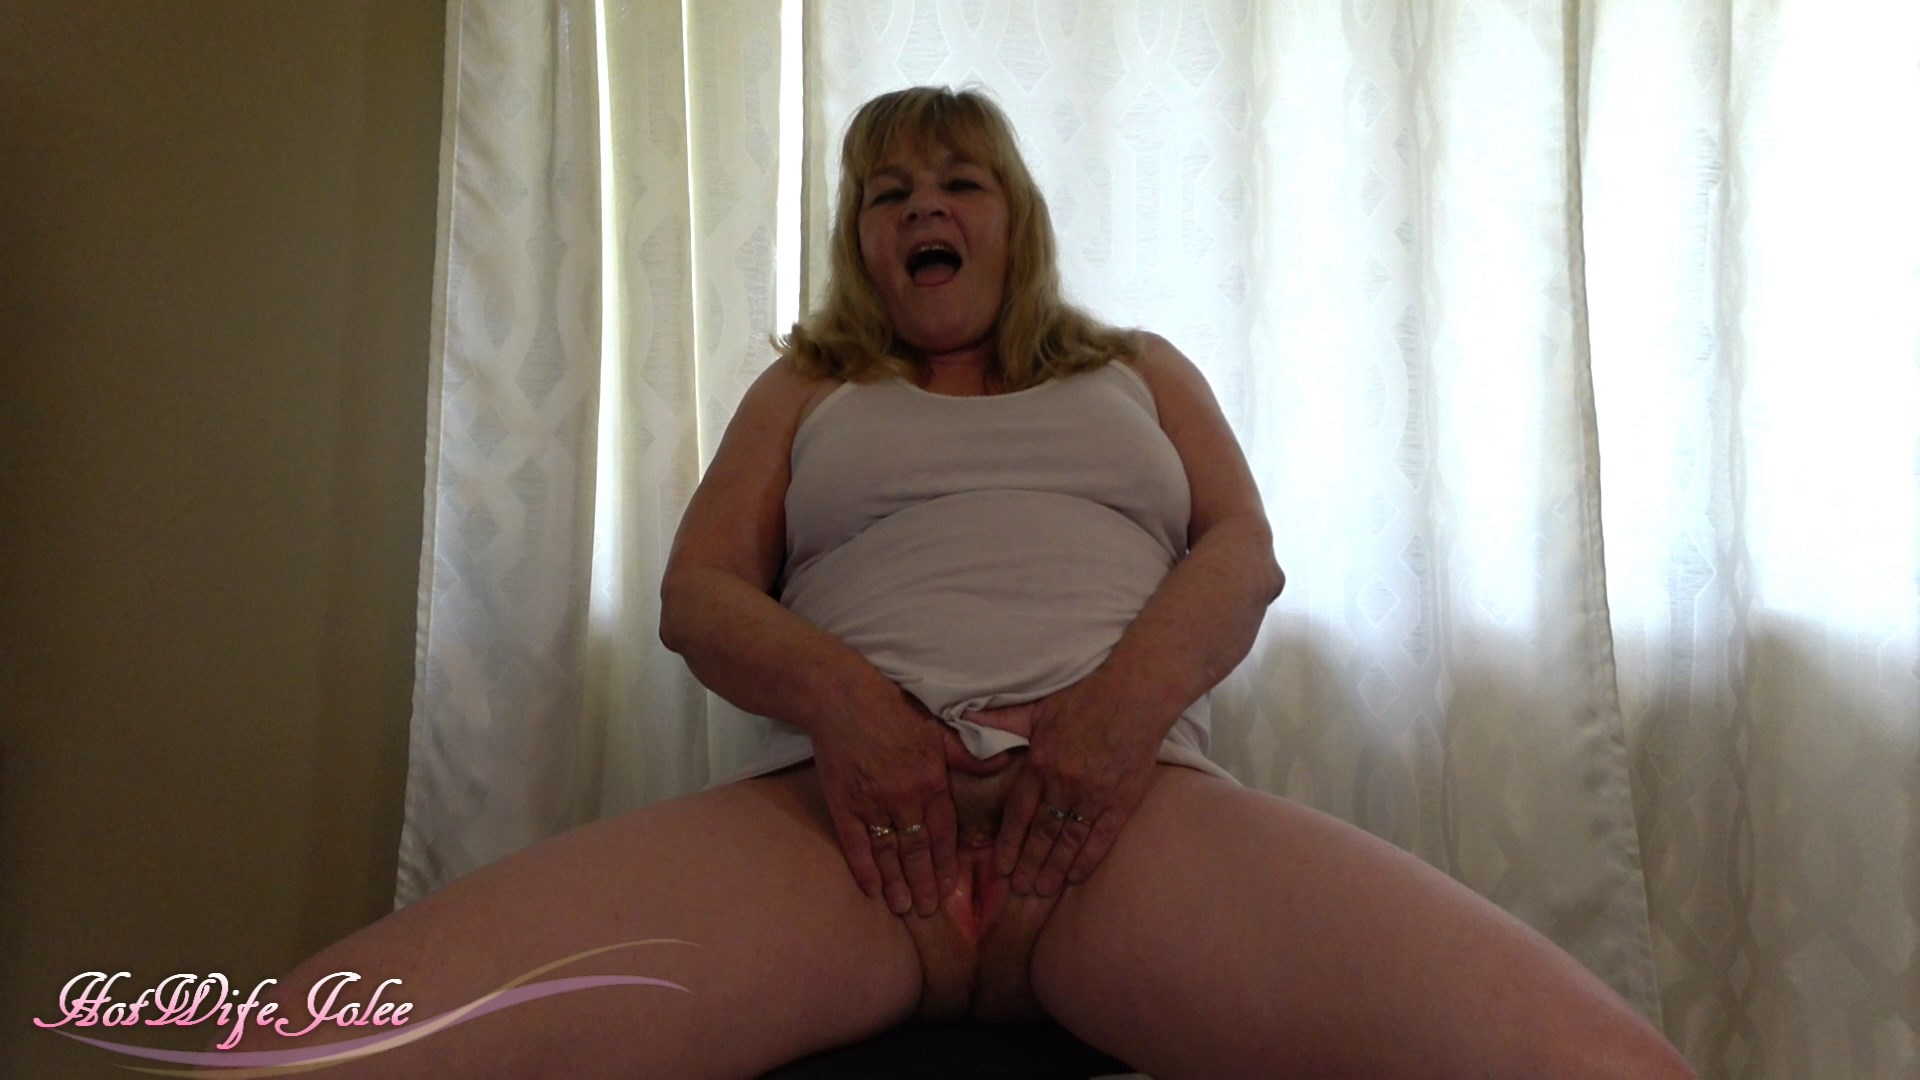 Hot Wife Jolee - Mommy-punishes her filthy young man